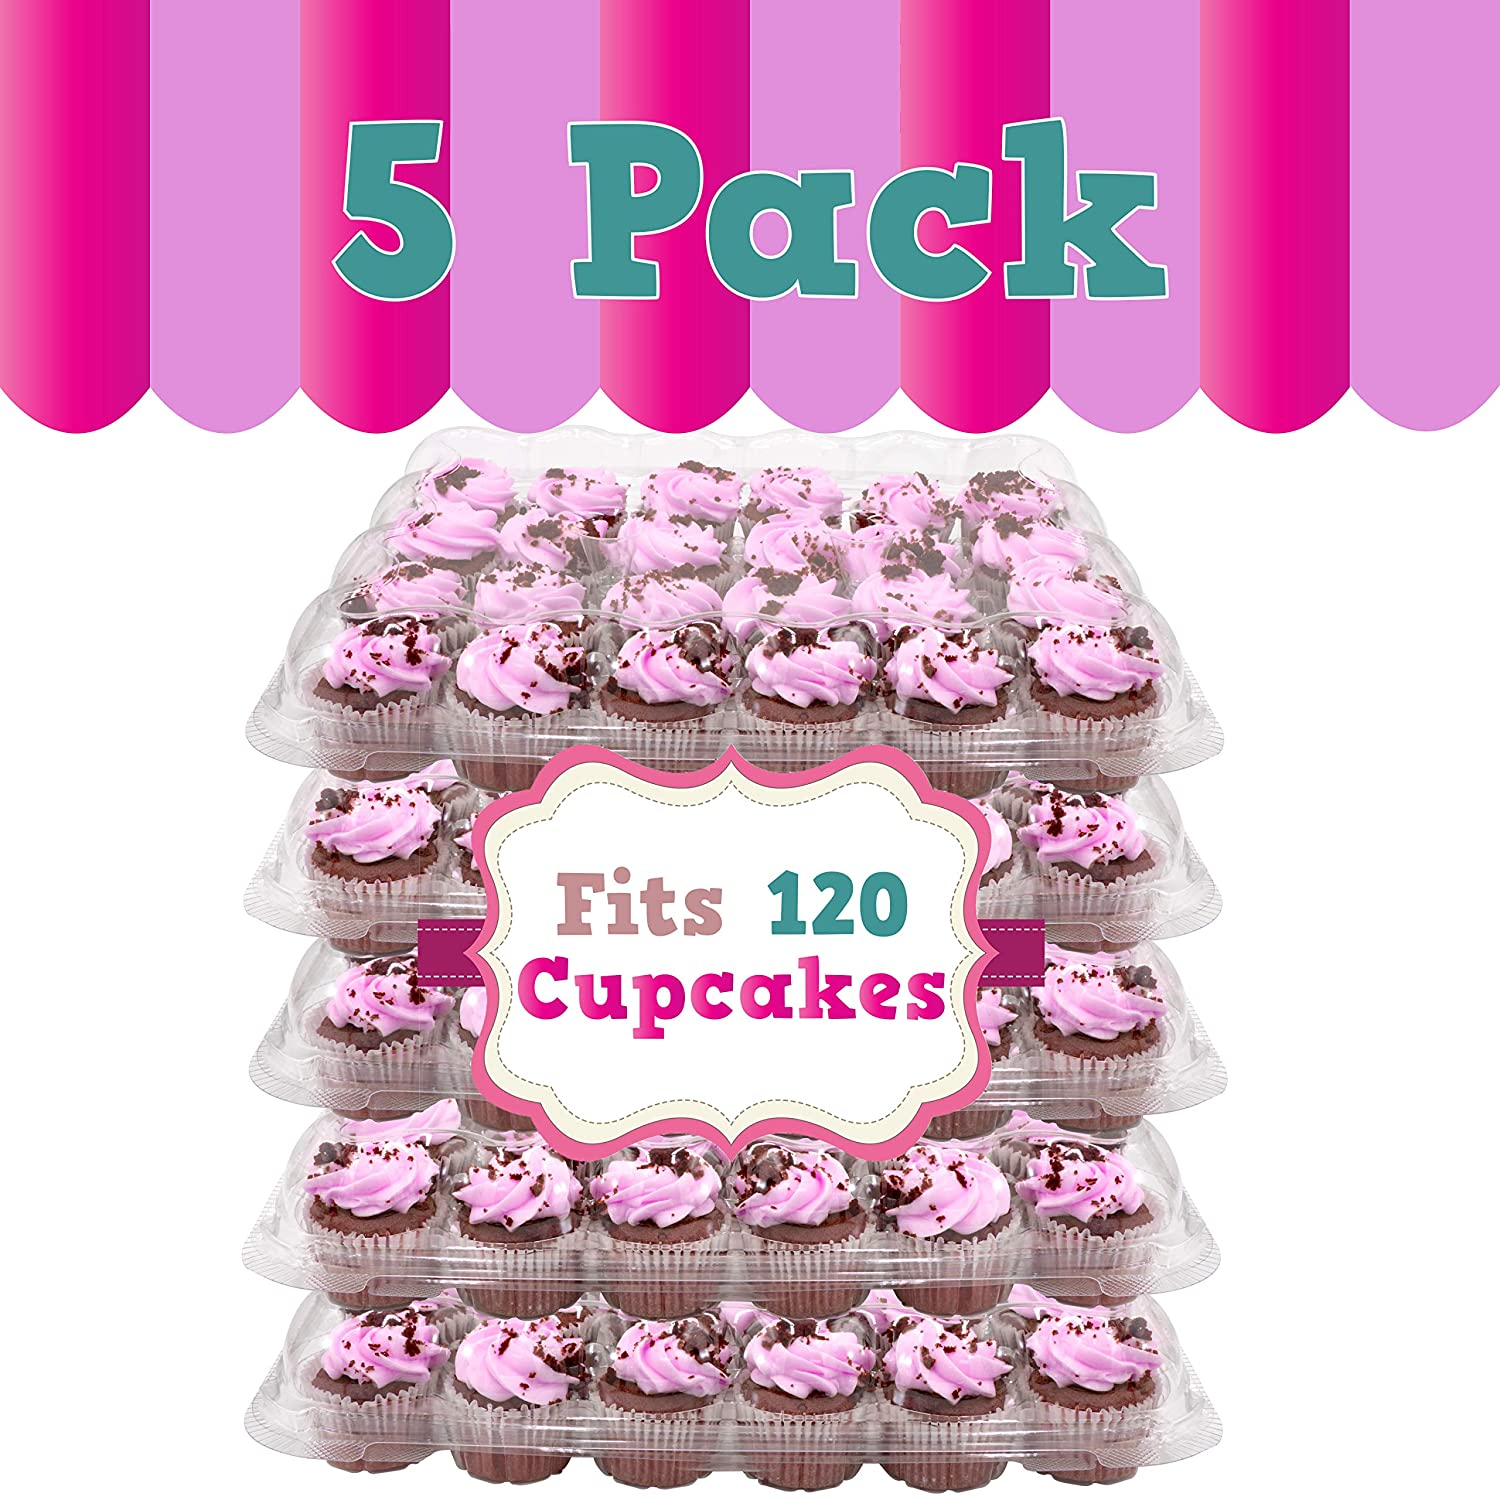 Perfect for Transporting Standard Size Muffins or Cupcakes Upper Midland Products 24 Slots Cupcake Containers Holders Set of 5 Plastic High Dome Cupcake Boxes for Tall Icing